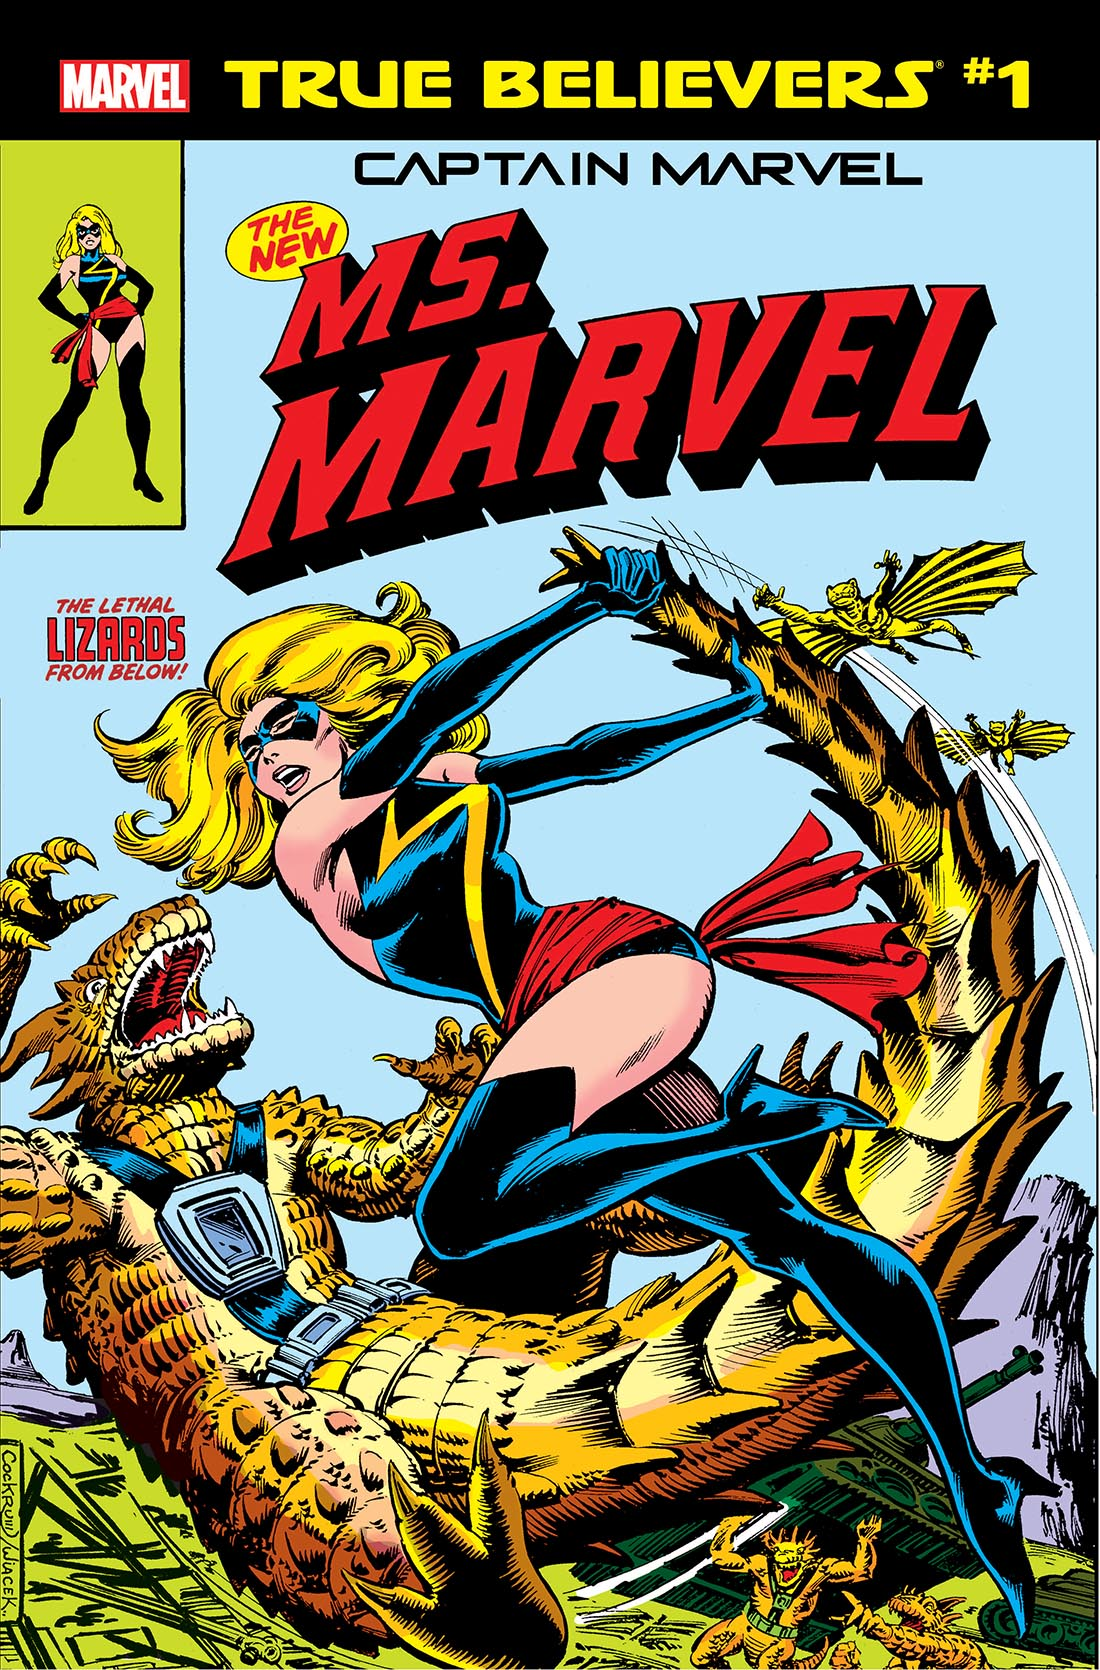 True Believers: Captain Marvel - The New Ms. Marvel Vol 1